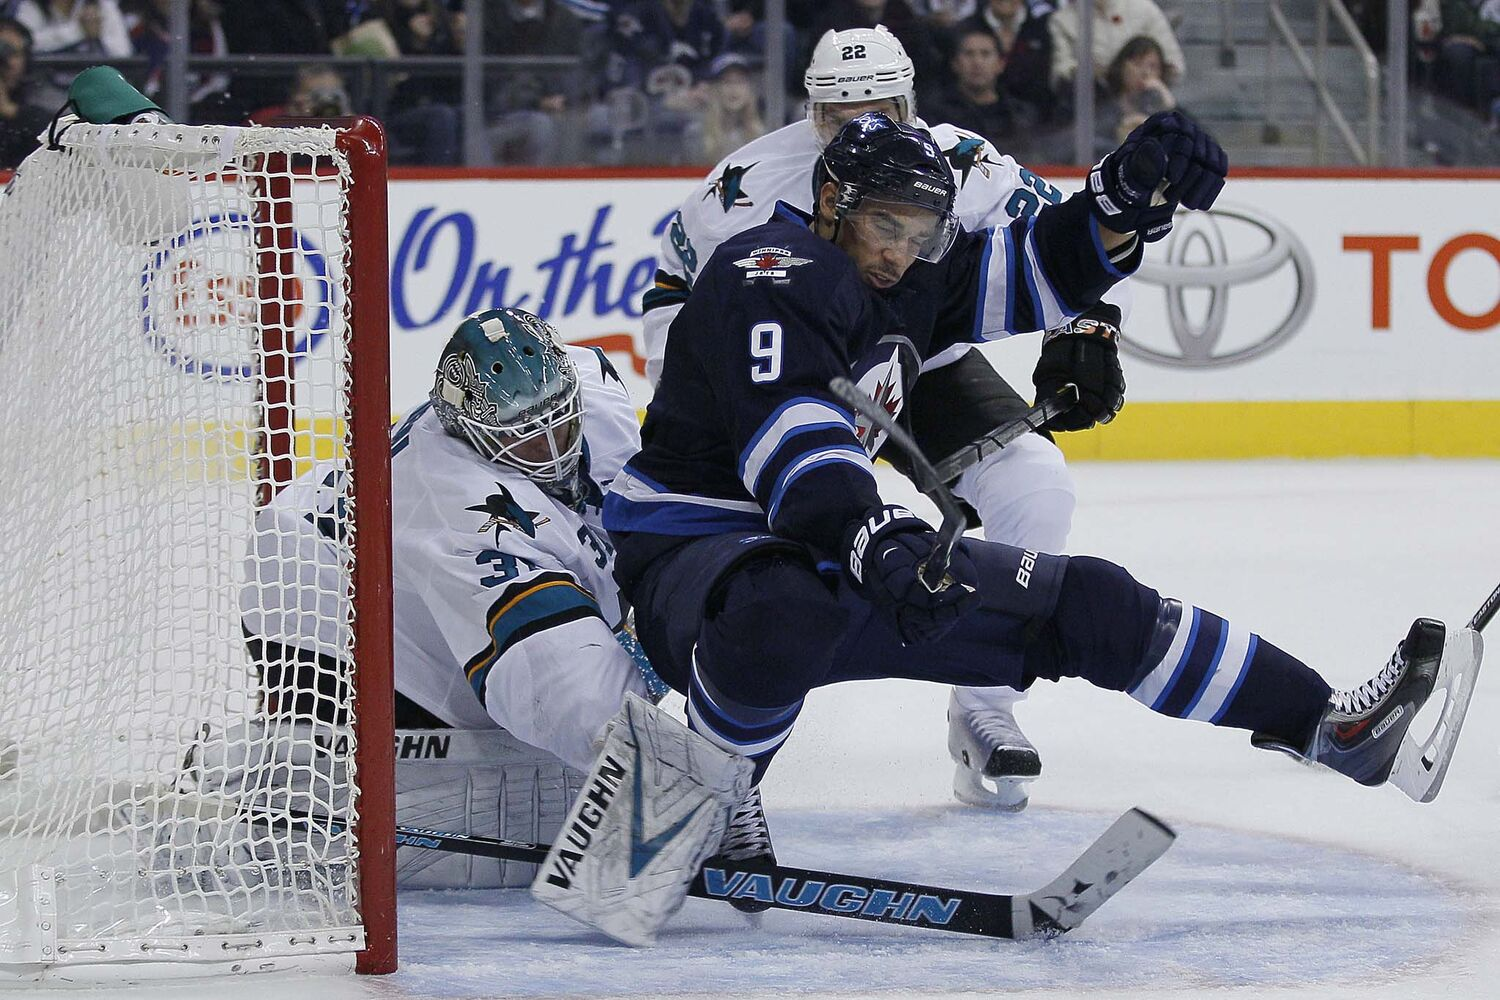 Winnipeg Jets' Evander Kane (9) crashes hard into San Jose Sharks' goaltender Antti Niemi (31) during second period action. (JOHN WOODS / WINNIPEG FREE PRESS)